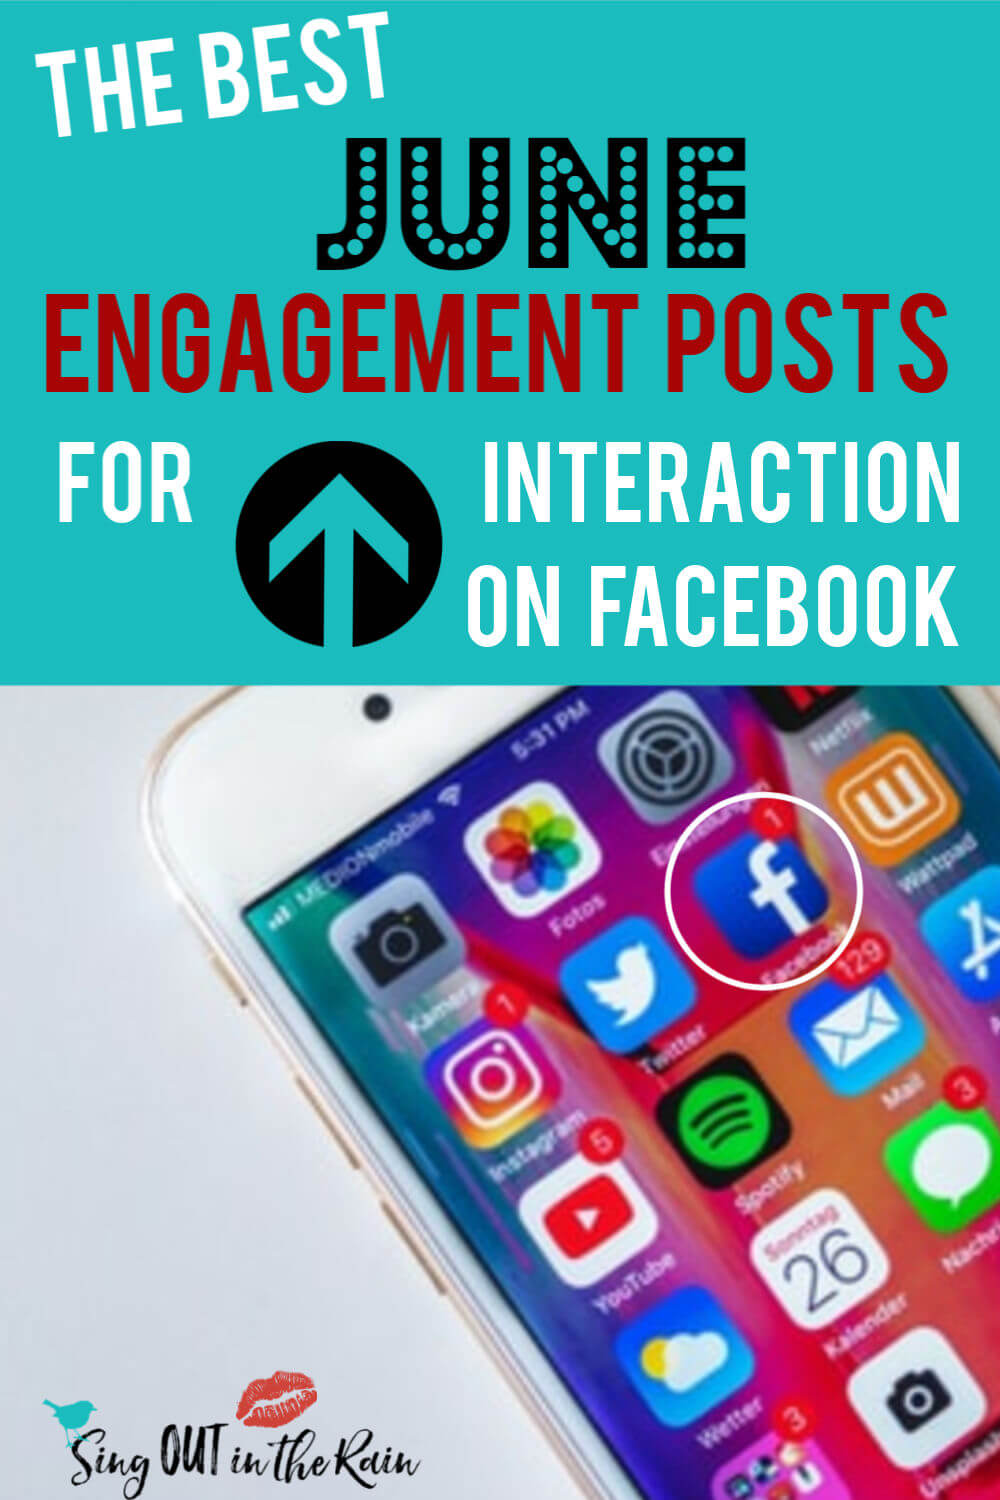 The BEST June Engagement Posts for MAXIMUM FB interaction